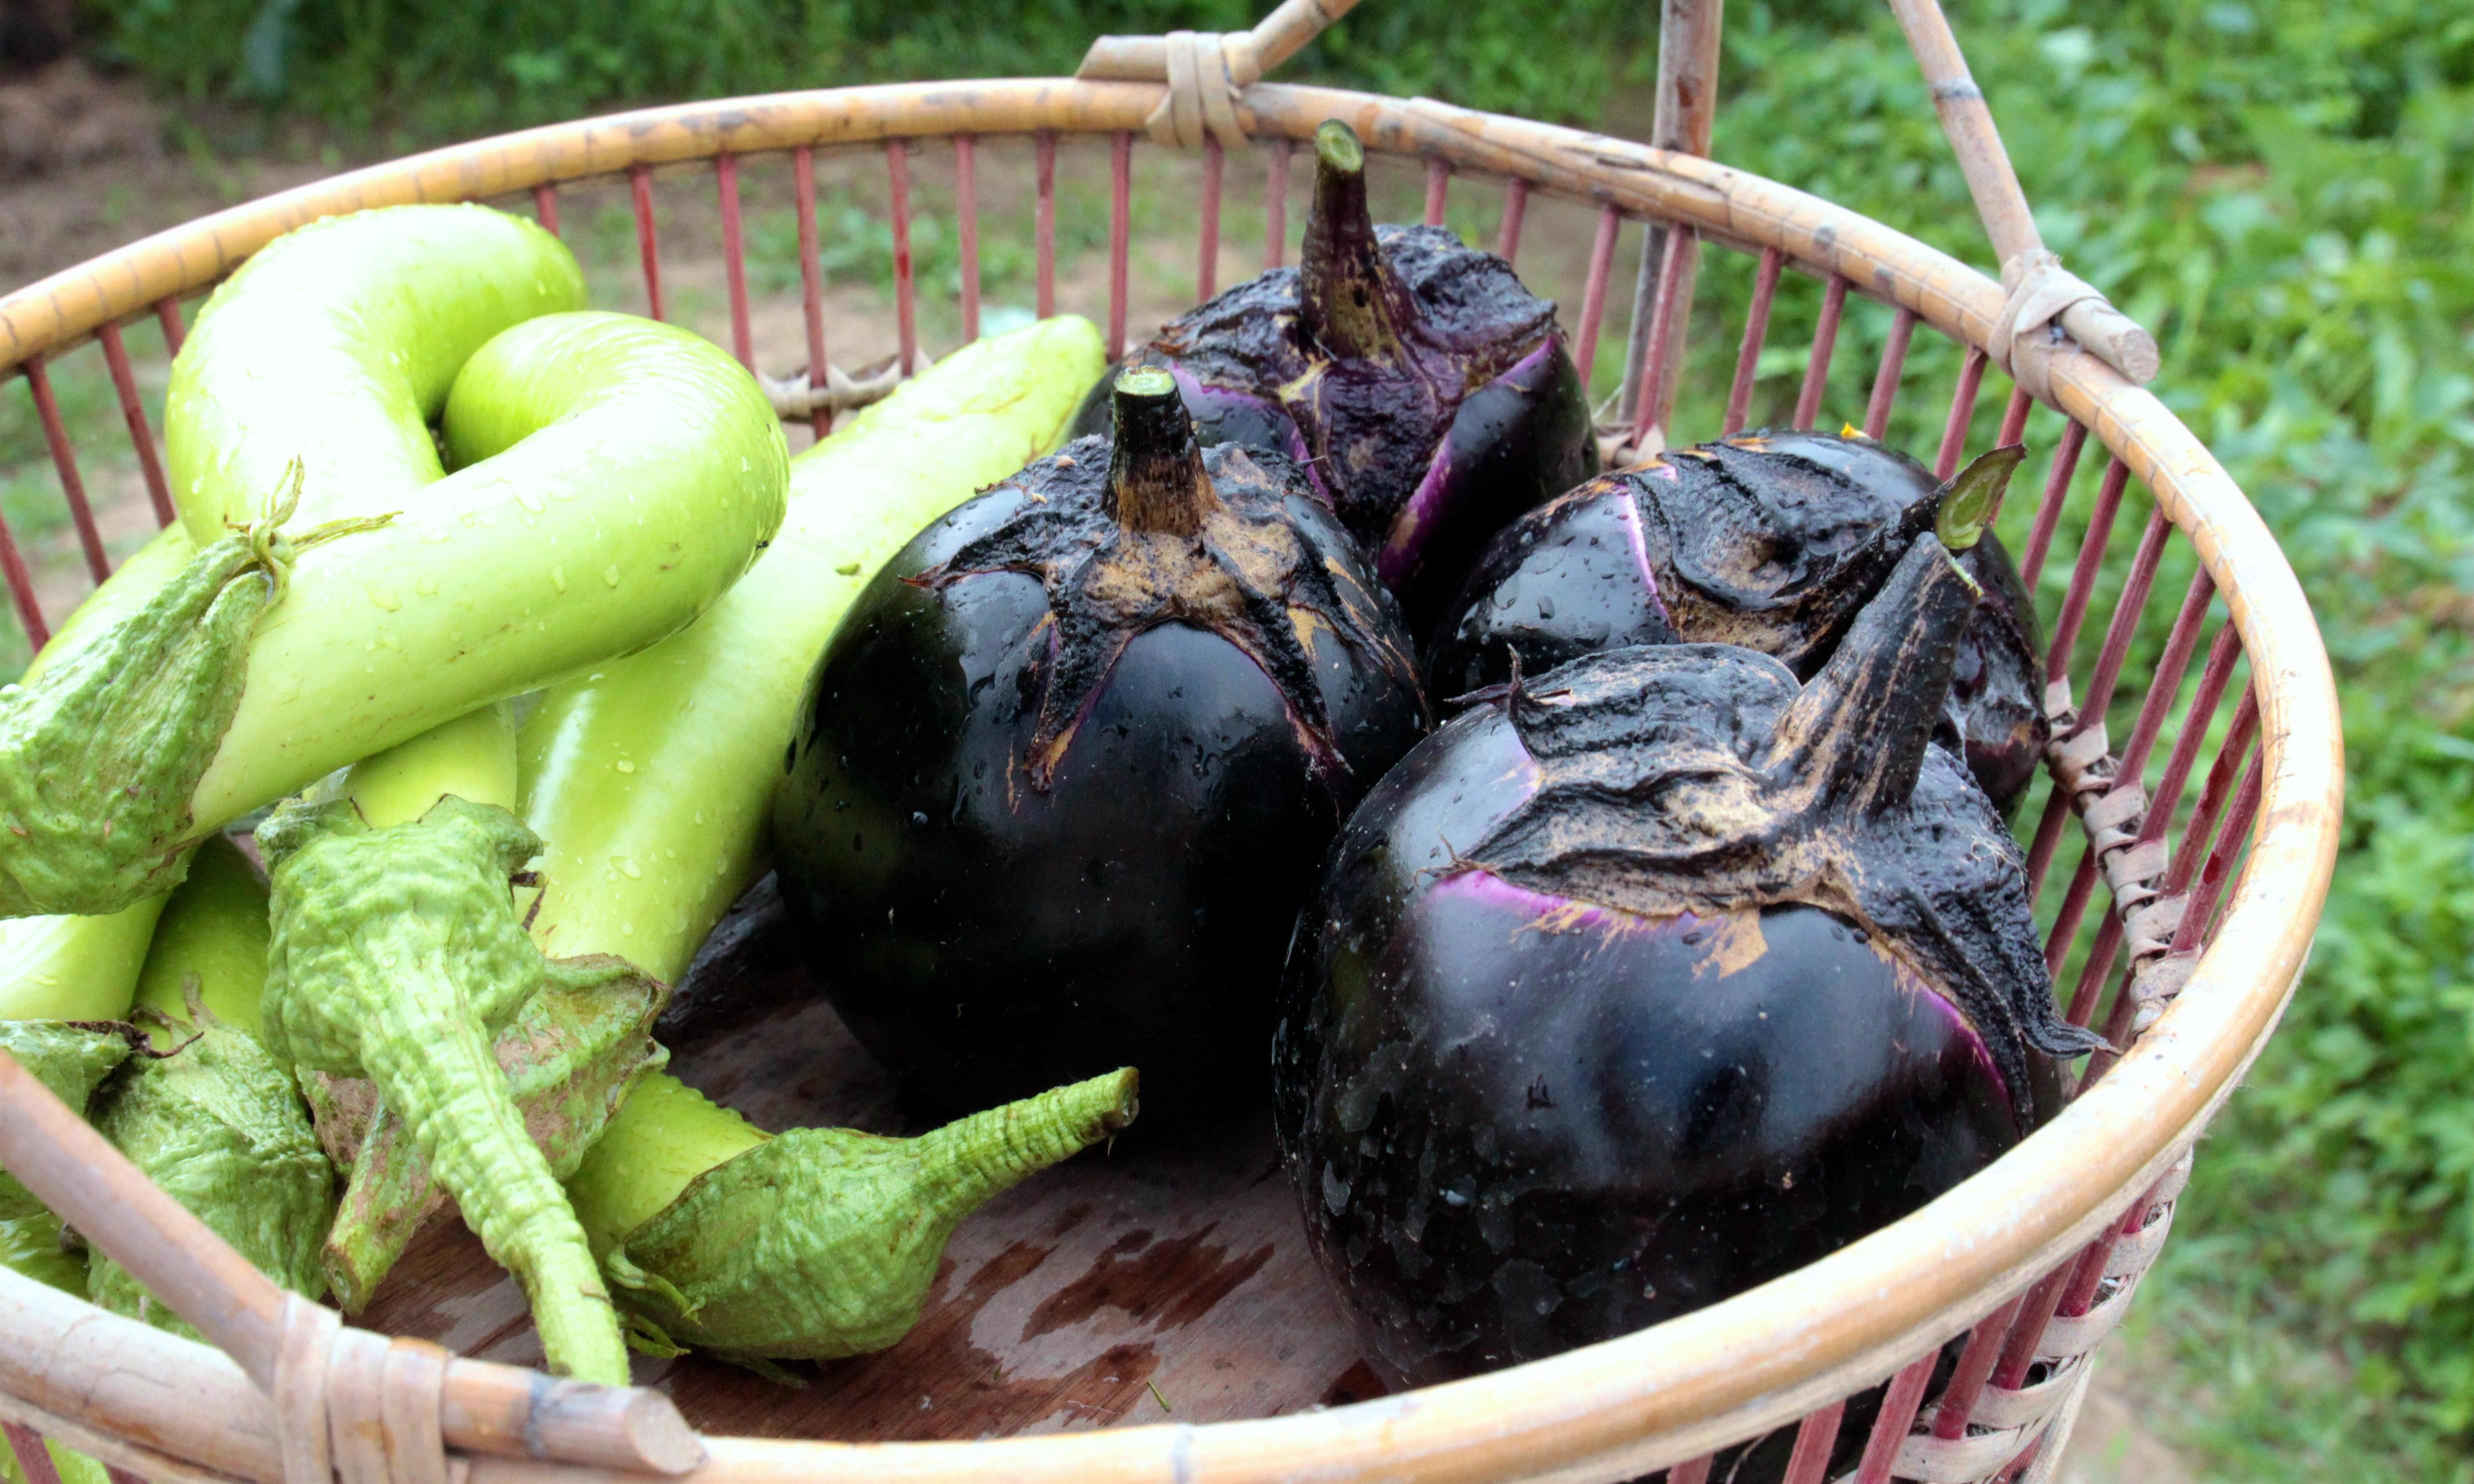 Tender and luscious: no other eggplant compares to this